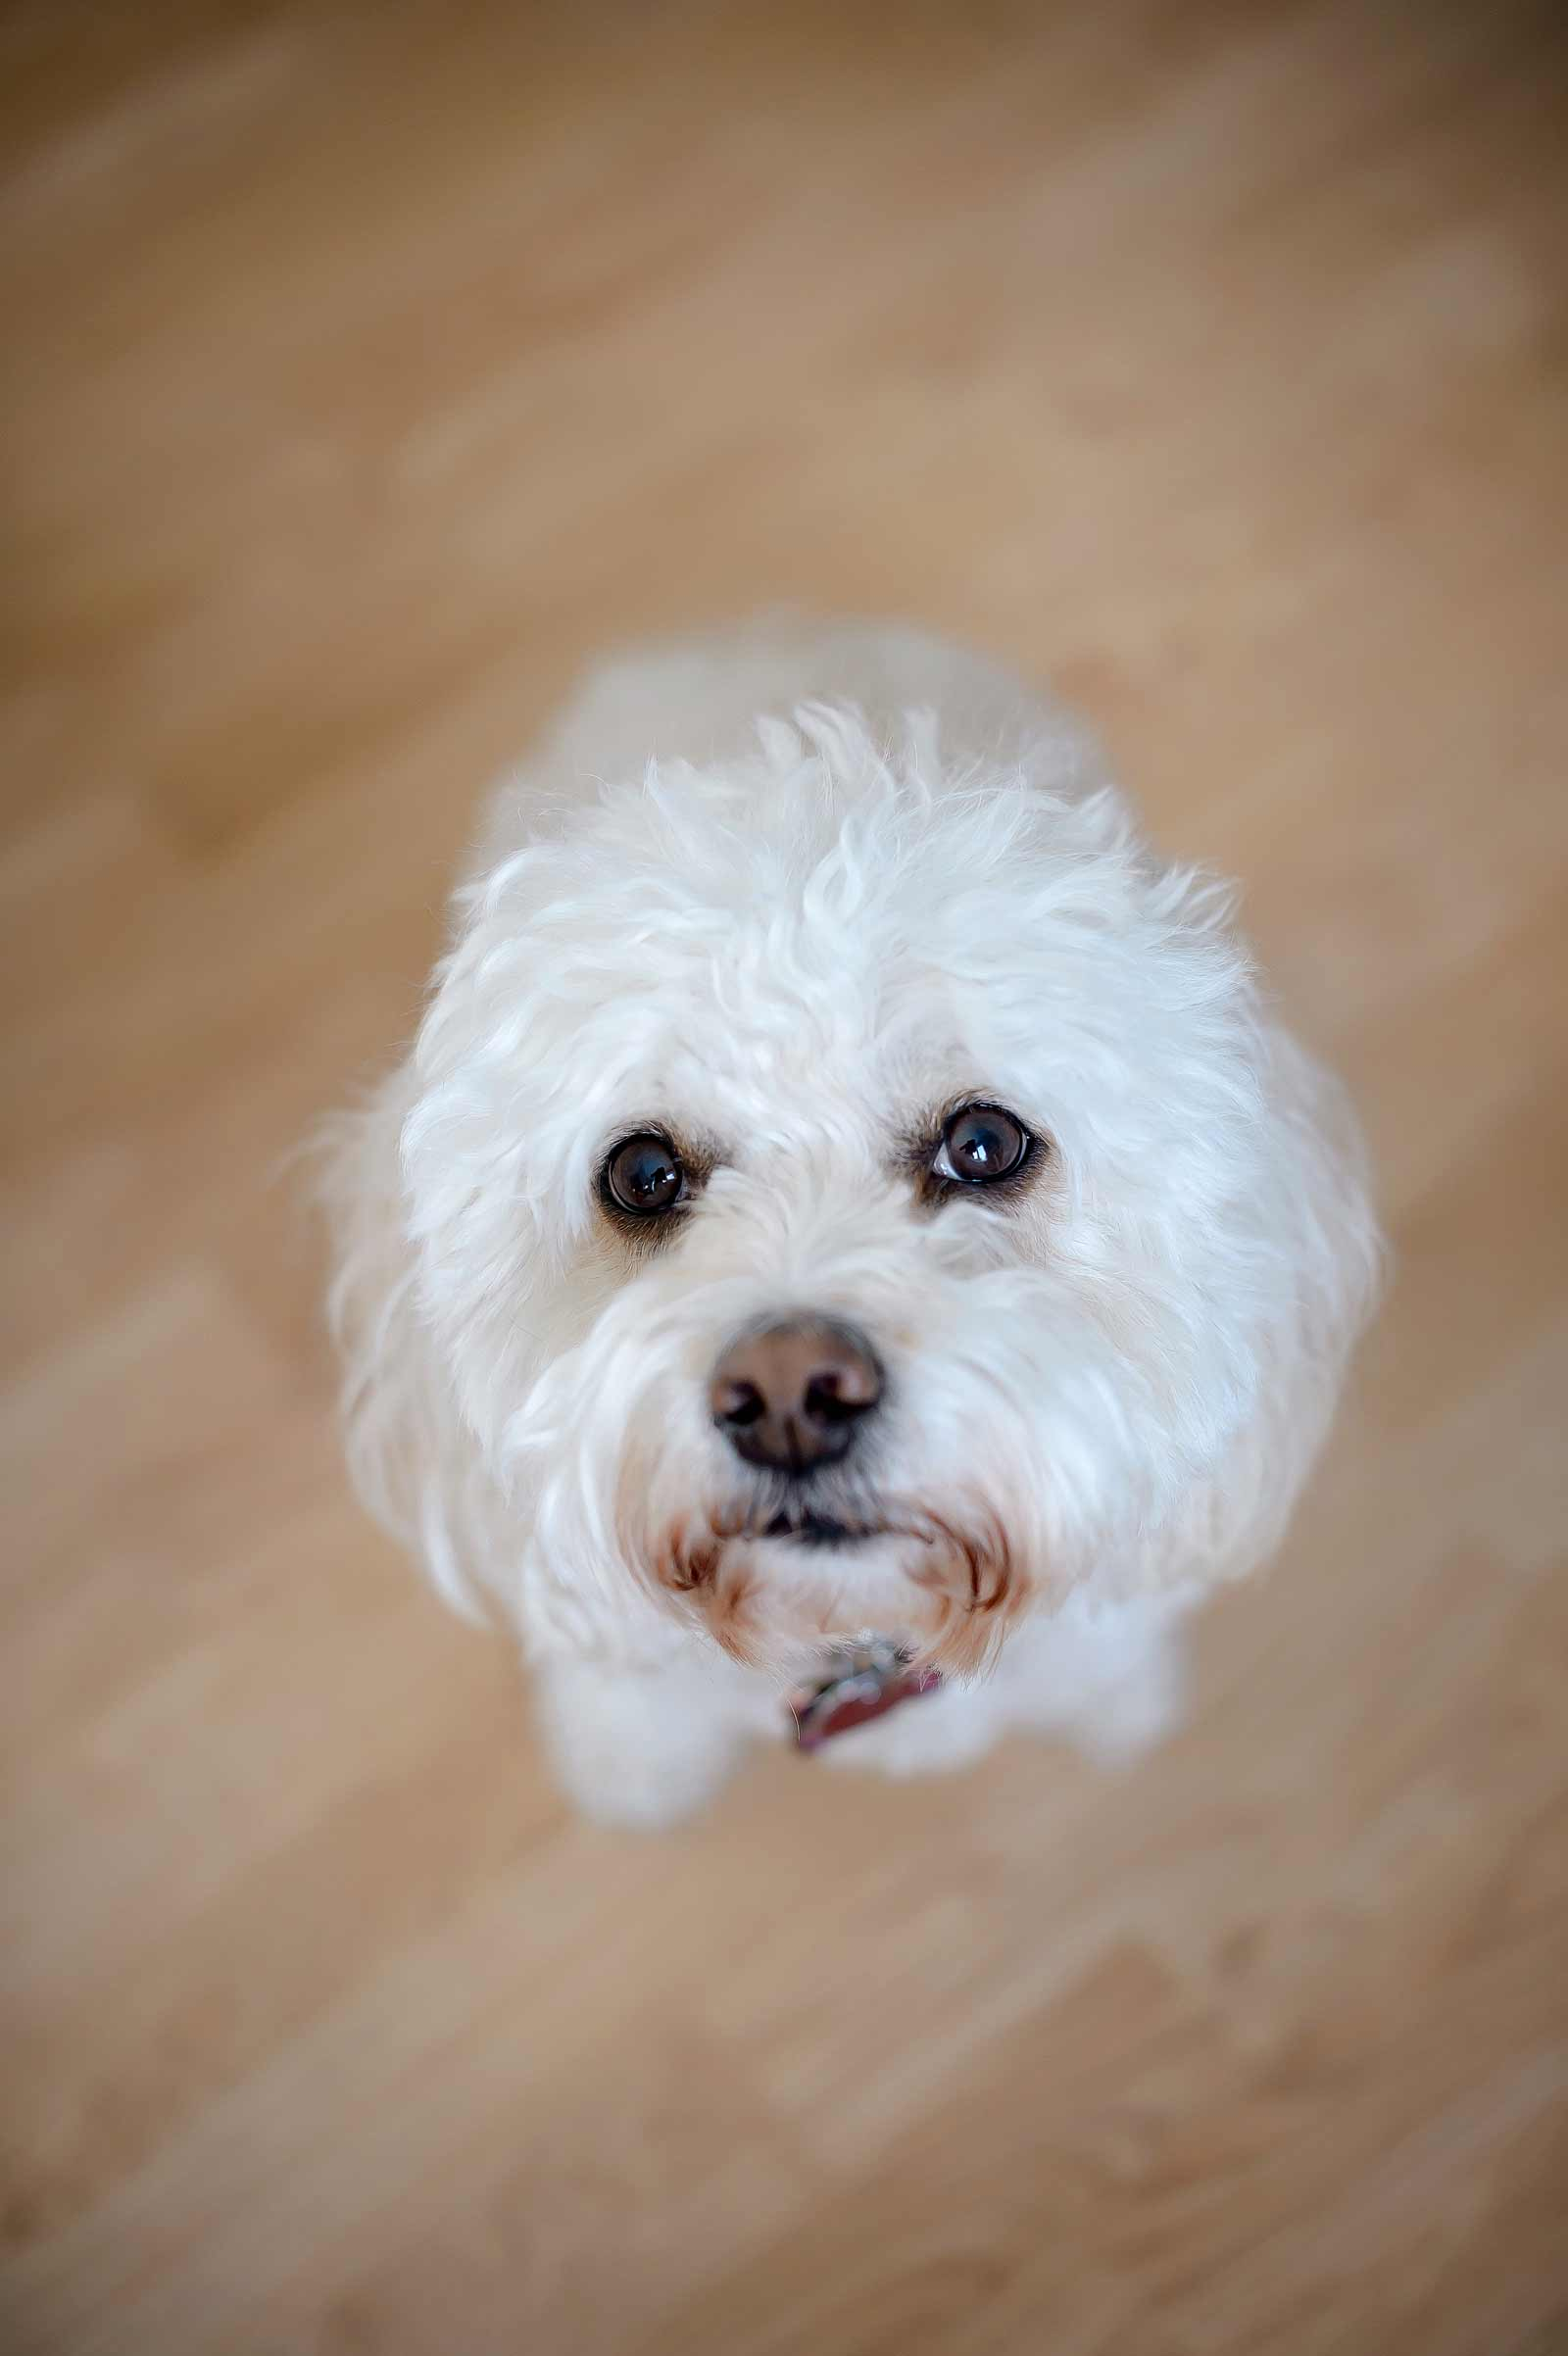 White bichon mix looking at the camera